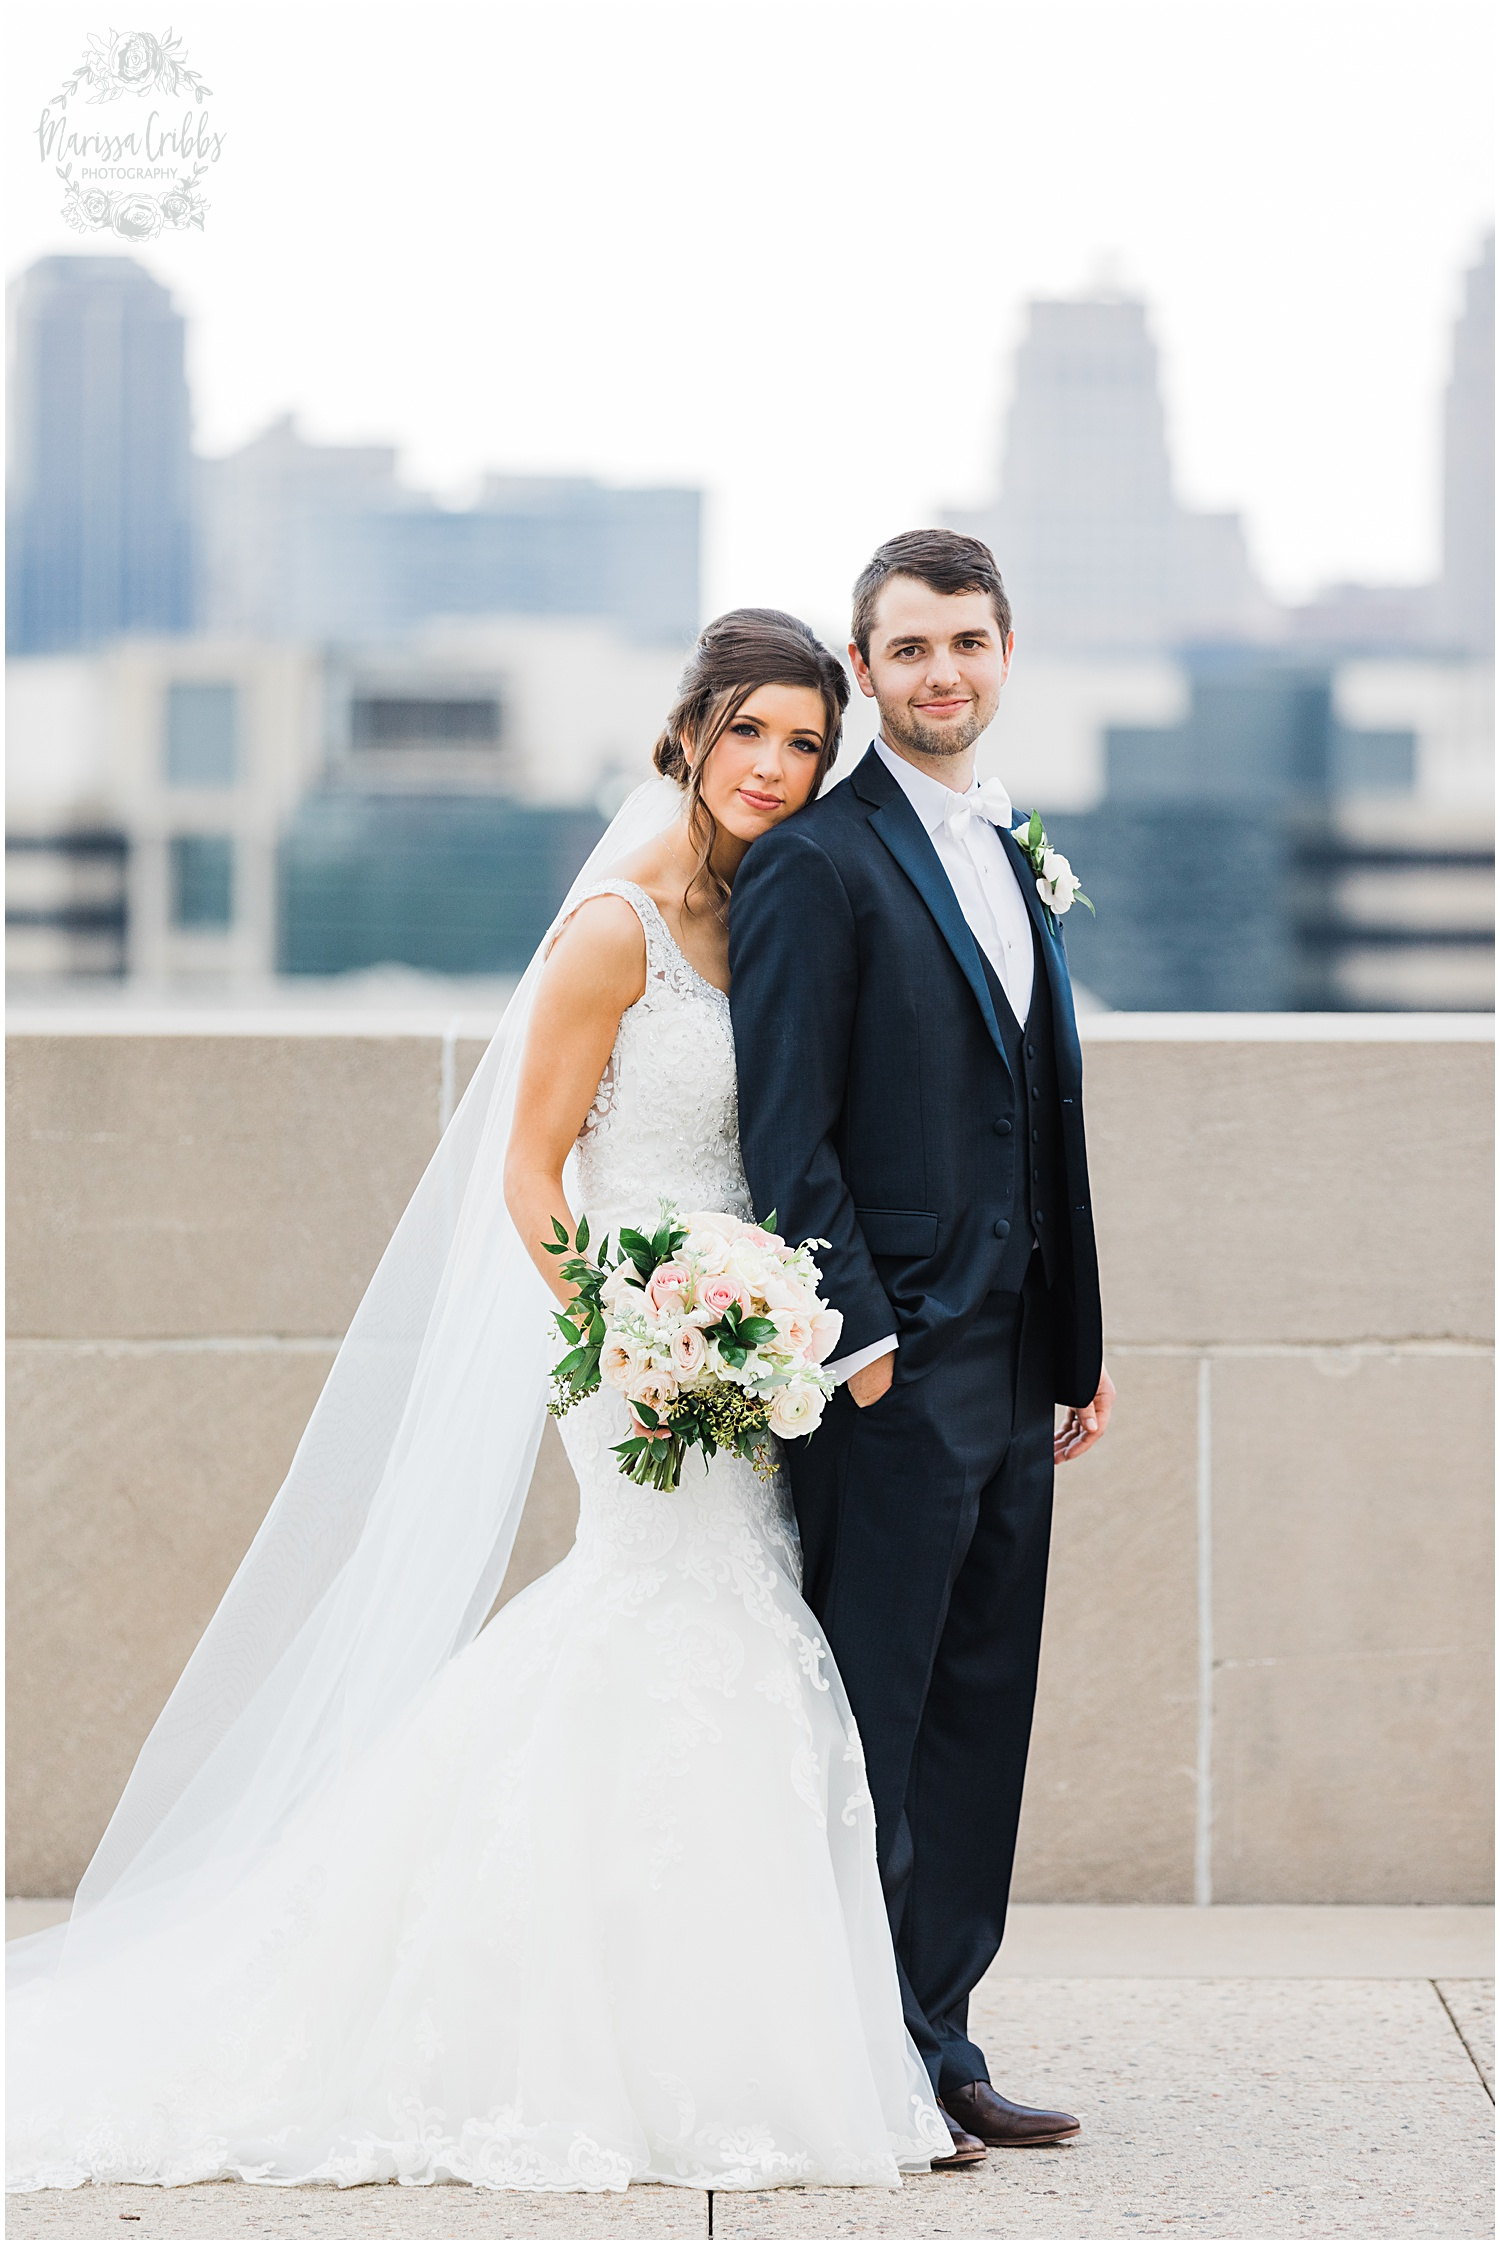 MEGAN & DEREK WEDDING BLOG | MARISSA CRIBBS PHOTOGRAPHY_8154.jpg